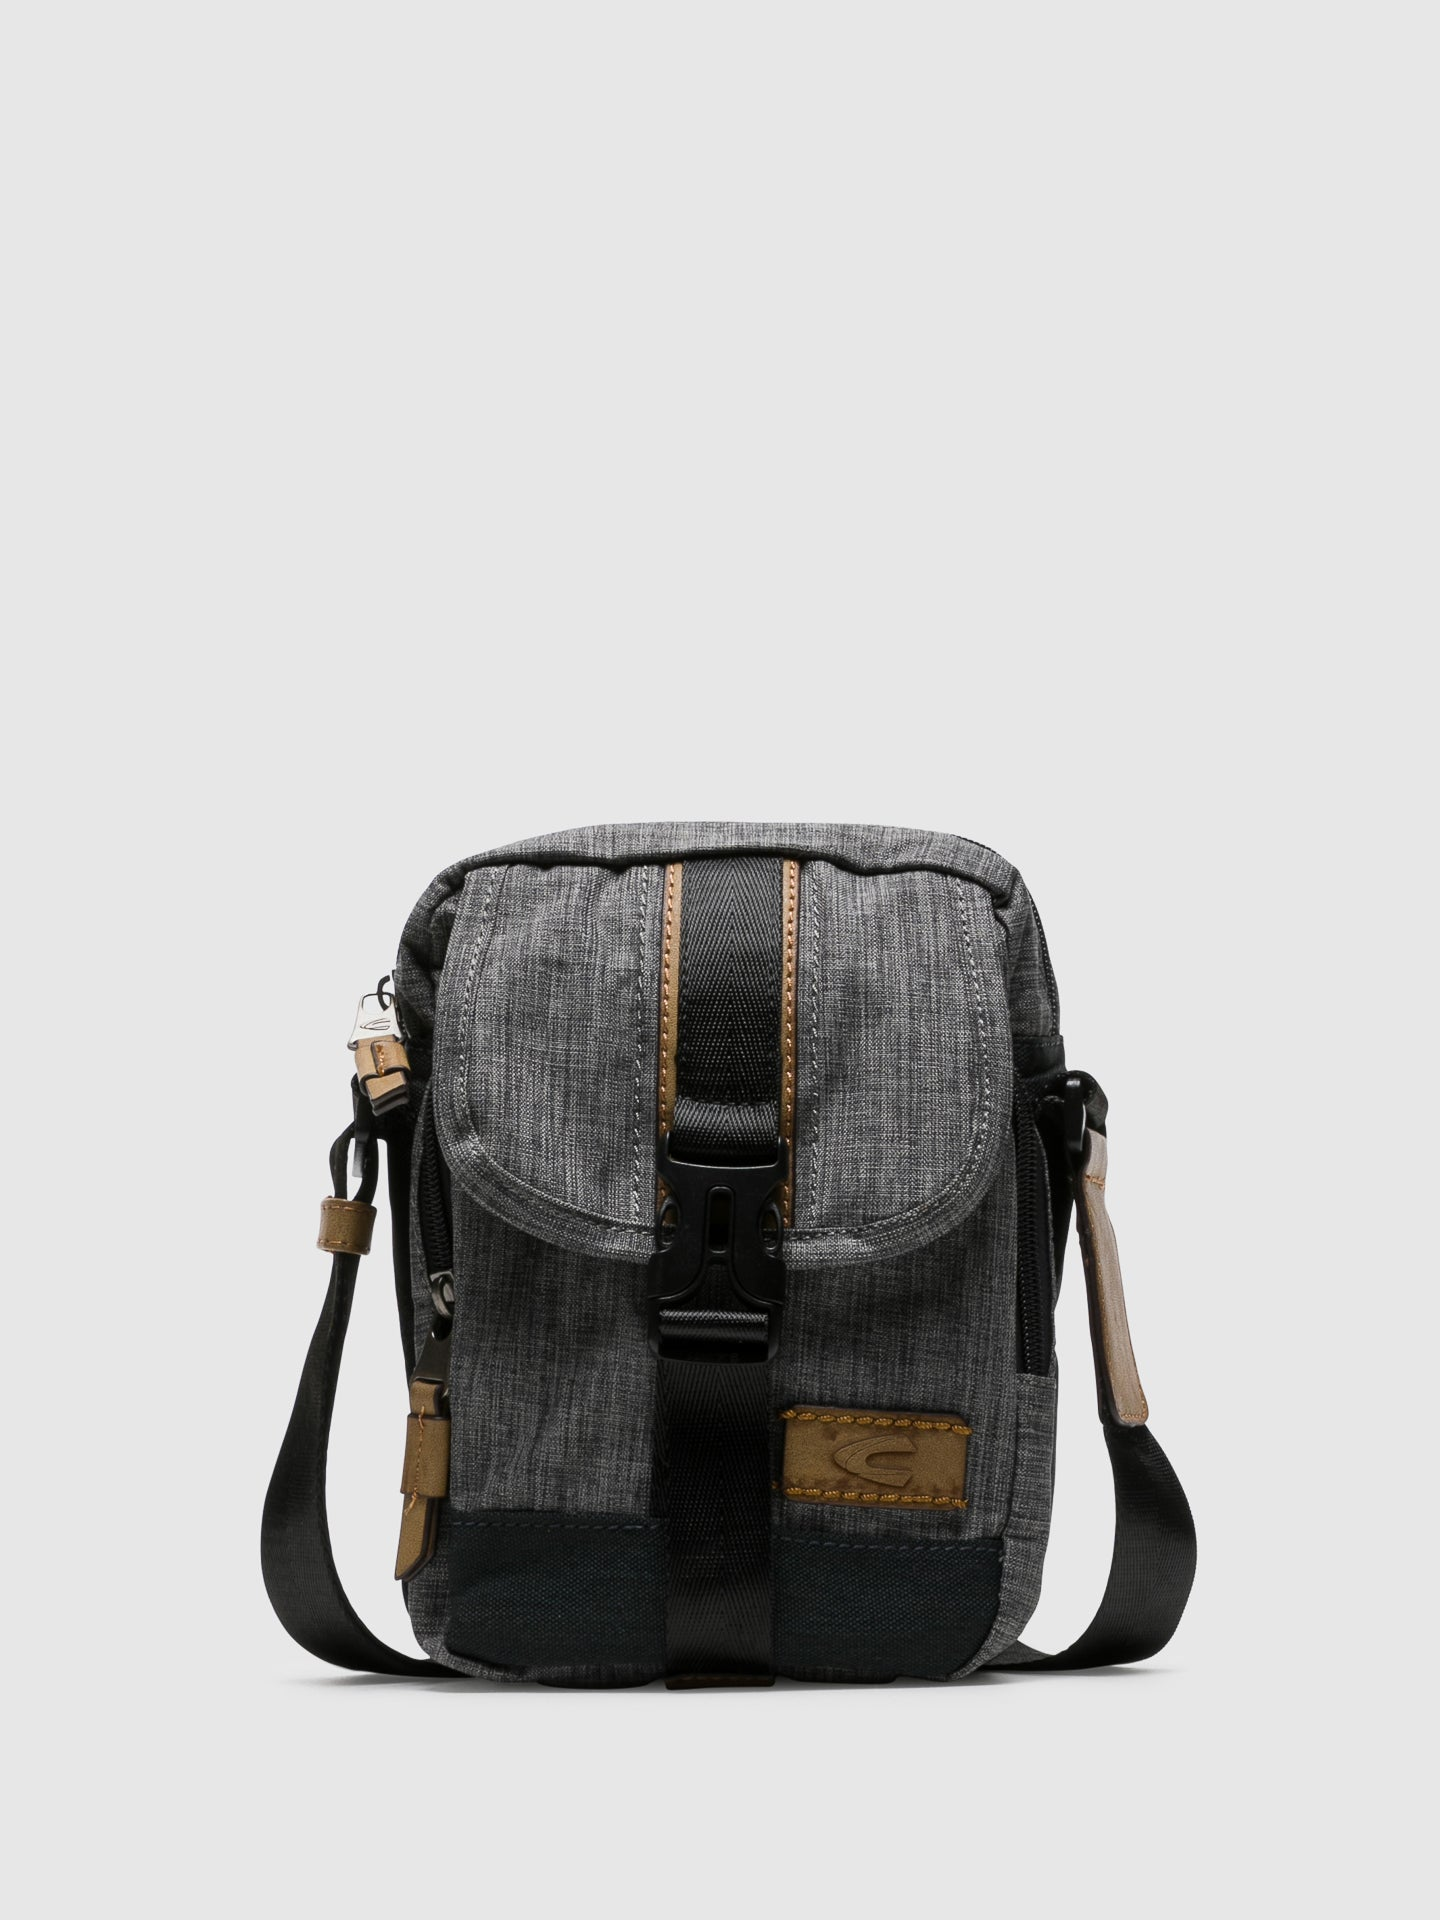 Camel Active Gray Crossbody Bag